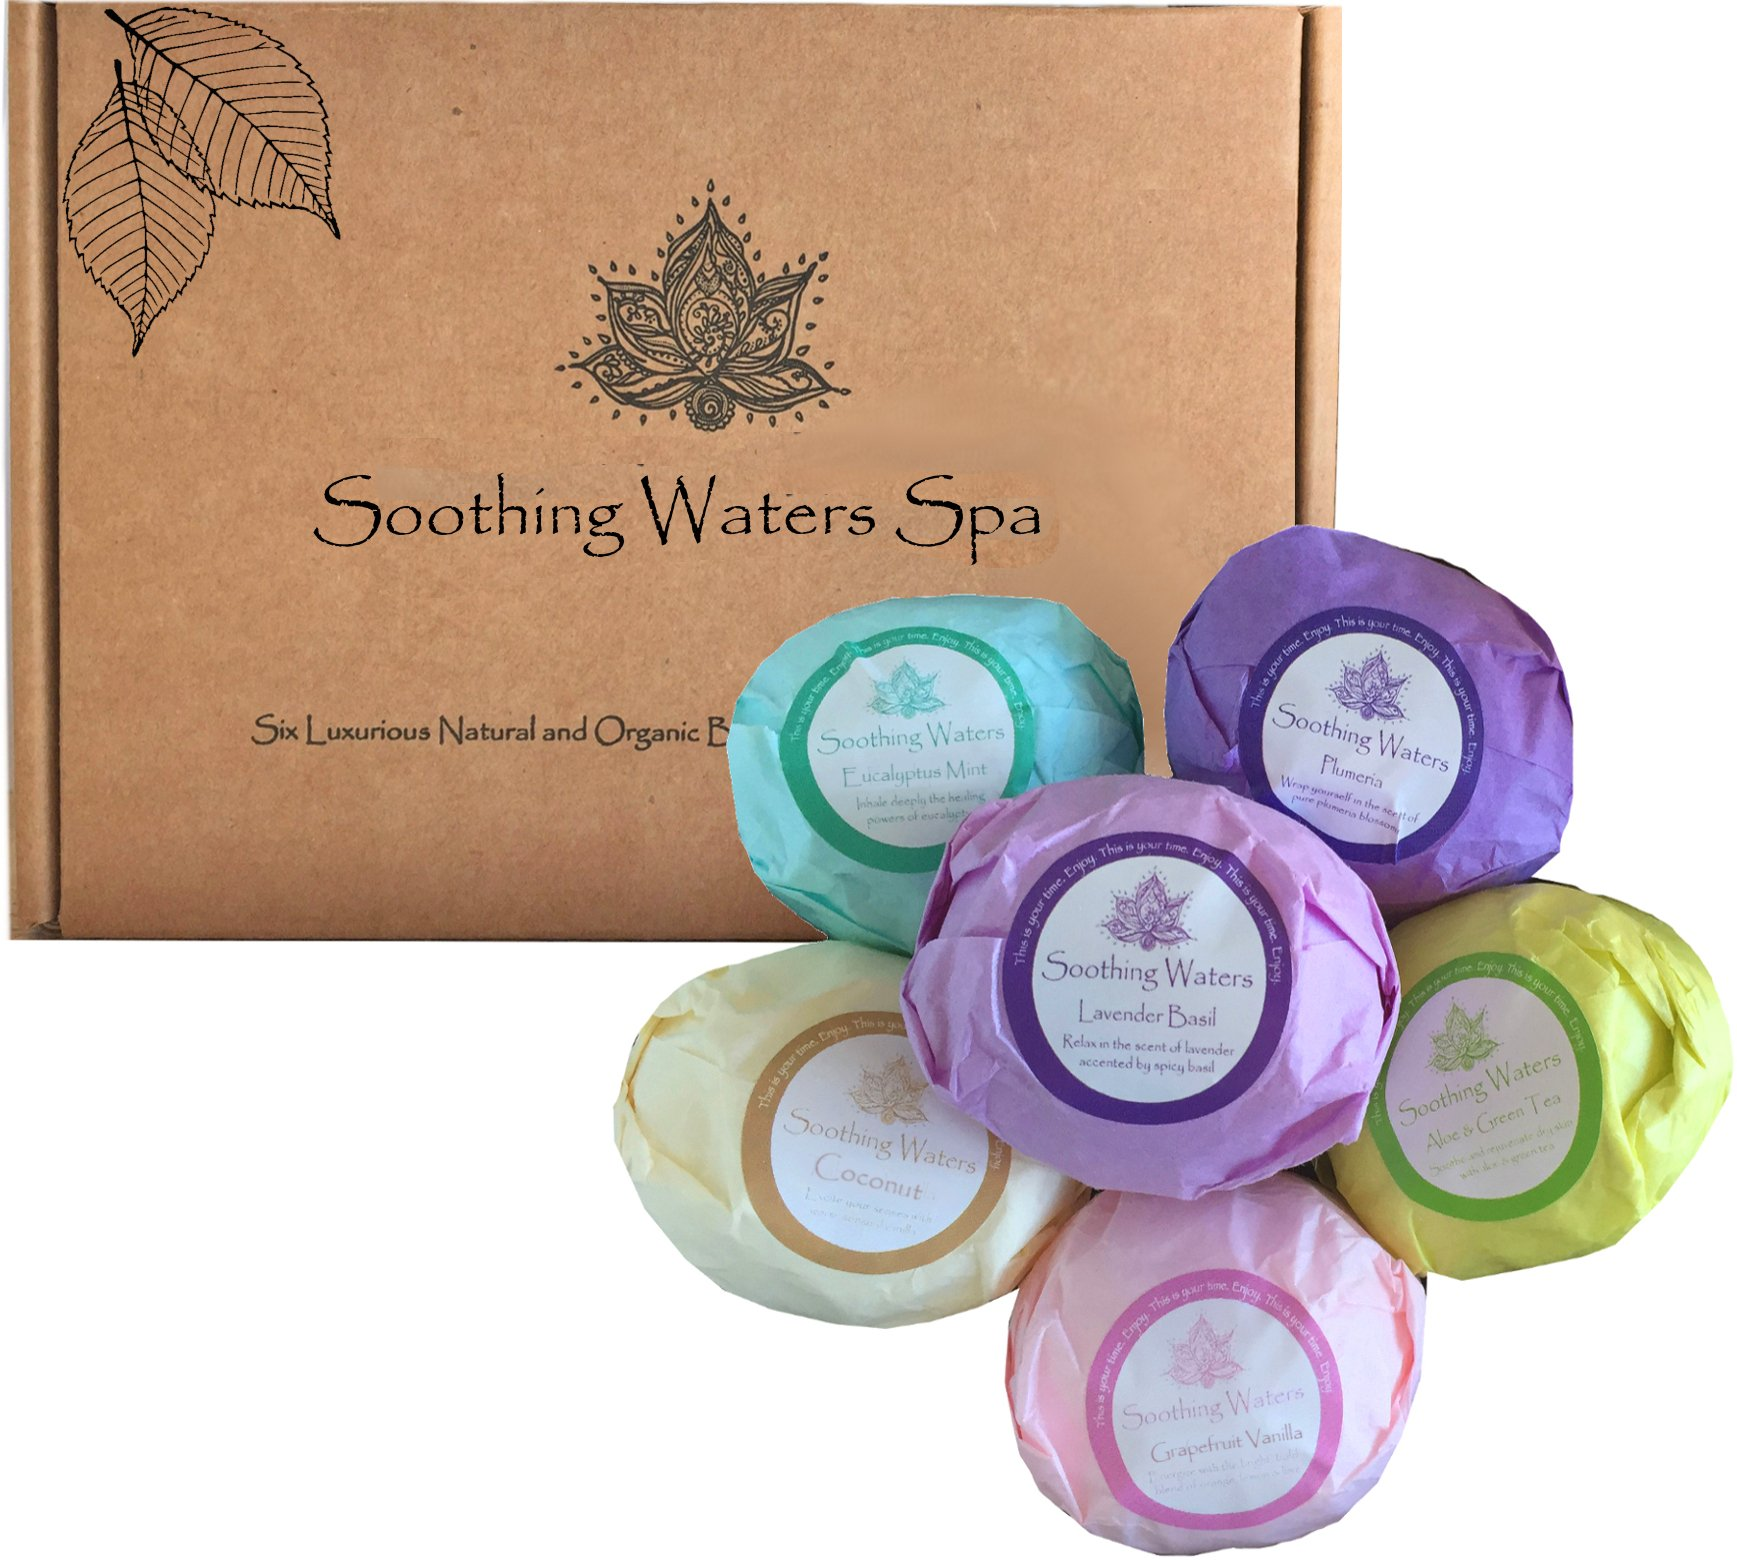 Organic & Natural Vegan Soothing Waters Spa Bath Bomb Fizzies Gift Set- Moisturizes Dry Skin w/Ultra Lush Shea and Coco Butter & Essential Oils. Best birthday gift idea for women, girlfriend, him, her